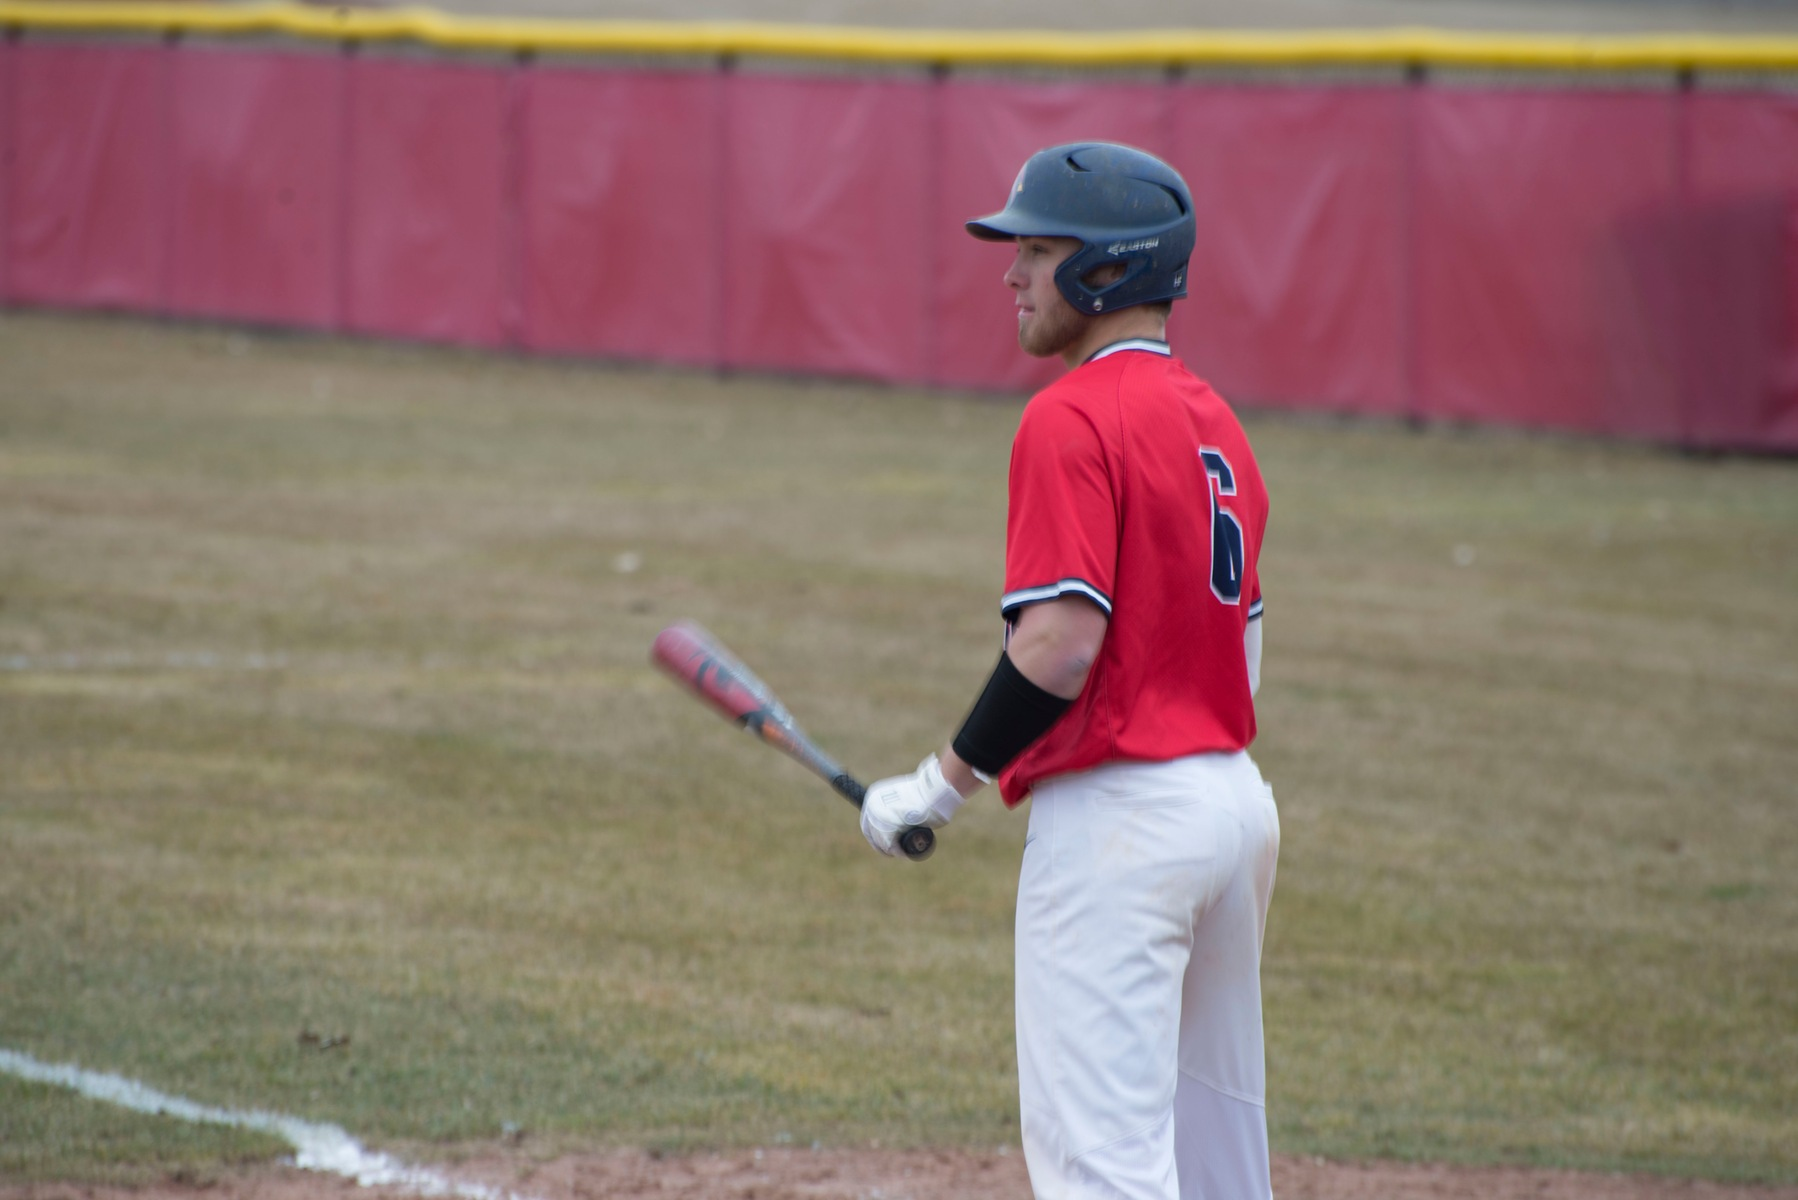 Cards claim weekend series with 19-7 victory over McKendree